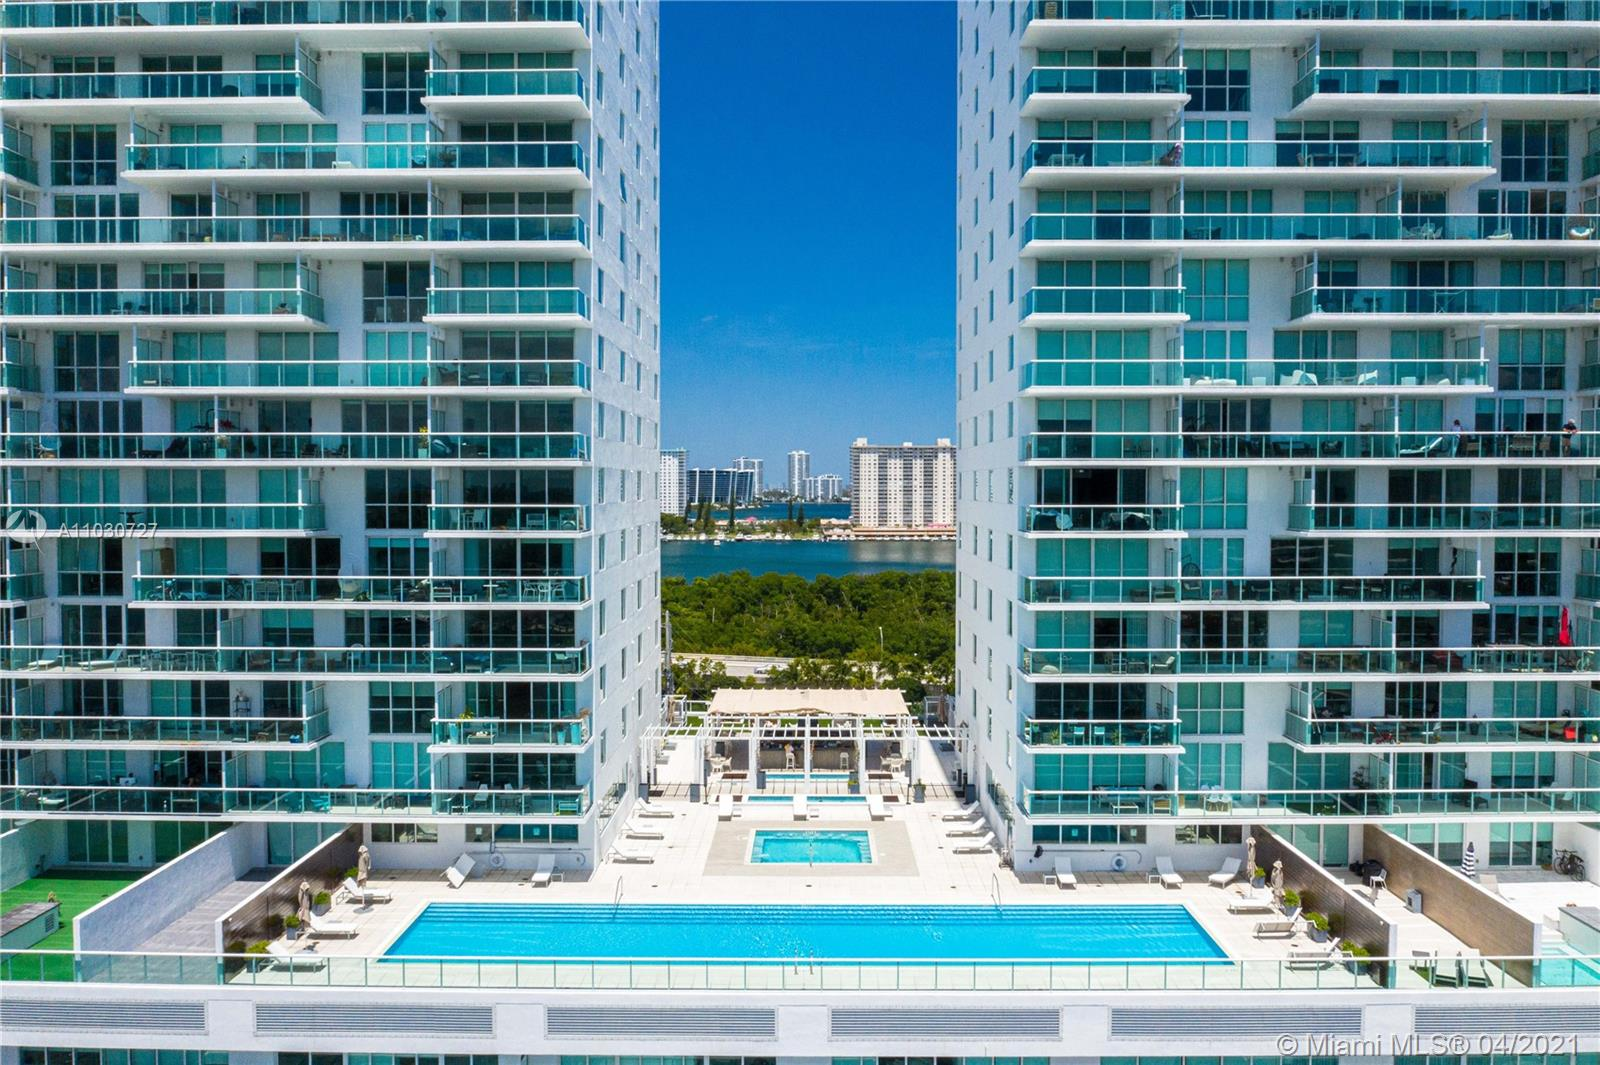 VISUALLY STUNNING DESIGNER UNIT IN A PREMIER WATERFRONT PROPERTY. FEATURES INCLUDE- 180 DEGREE INTRACOASTAL WATERVIEWS & OLETA PARK, GLASS ENCLOSED 3RD BEDROOM OFF THE KITCHEN PLUS A 2 STORY OPEN BALCONY ENHANCING MUCH LIGHT INTO LIVING AREAS. APT IS SPLIT LEVEL (2FLS) WITH EUROPEAN CABINETRY & APPLIANCES WITH DESIGNER FIXTURES THRU-OUT,  SPACIOUS CLOSETS, WASHER/DRYER IN UNIT, 2 PARKING SPOTS,  400 SUNNY ISLES IS A FULL-SERVICE CONDOMINIUM WITH AMENITIES SUCH AS OLYMPIC SIZED INFINITY EDGE POOL, CABANAS, 24 HR CONCIERGE & VALET, PRO TENNIS COURTS AND FITNESS CENTER.